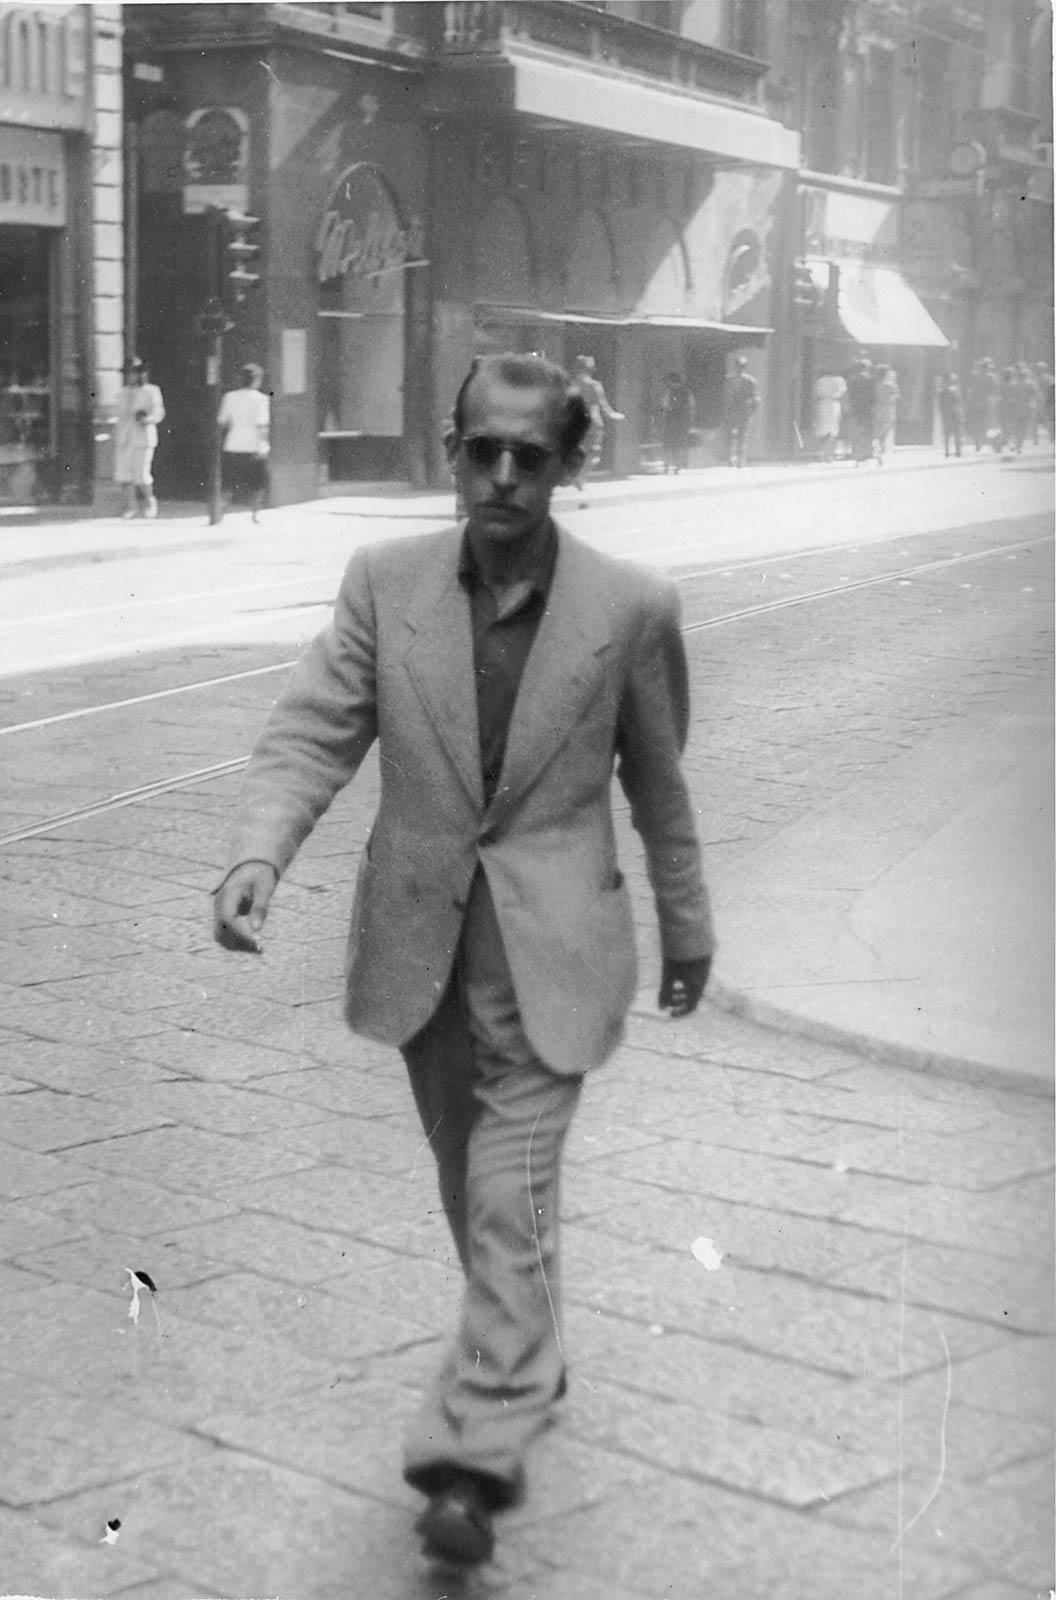 Steinberg in Milan, 1930s. Saul Steinberg Papers, Beinecke Rare Book and Manuscript Library, Yale University.